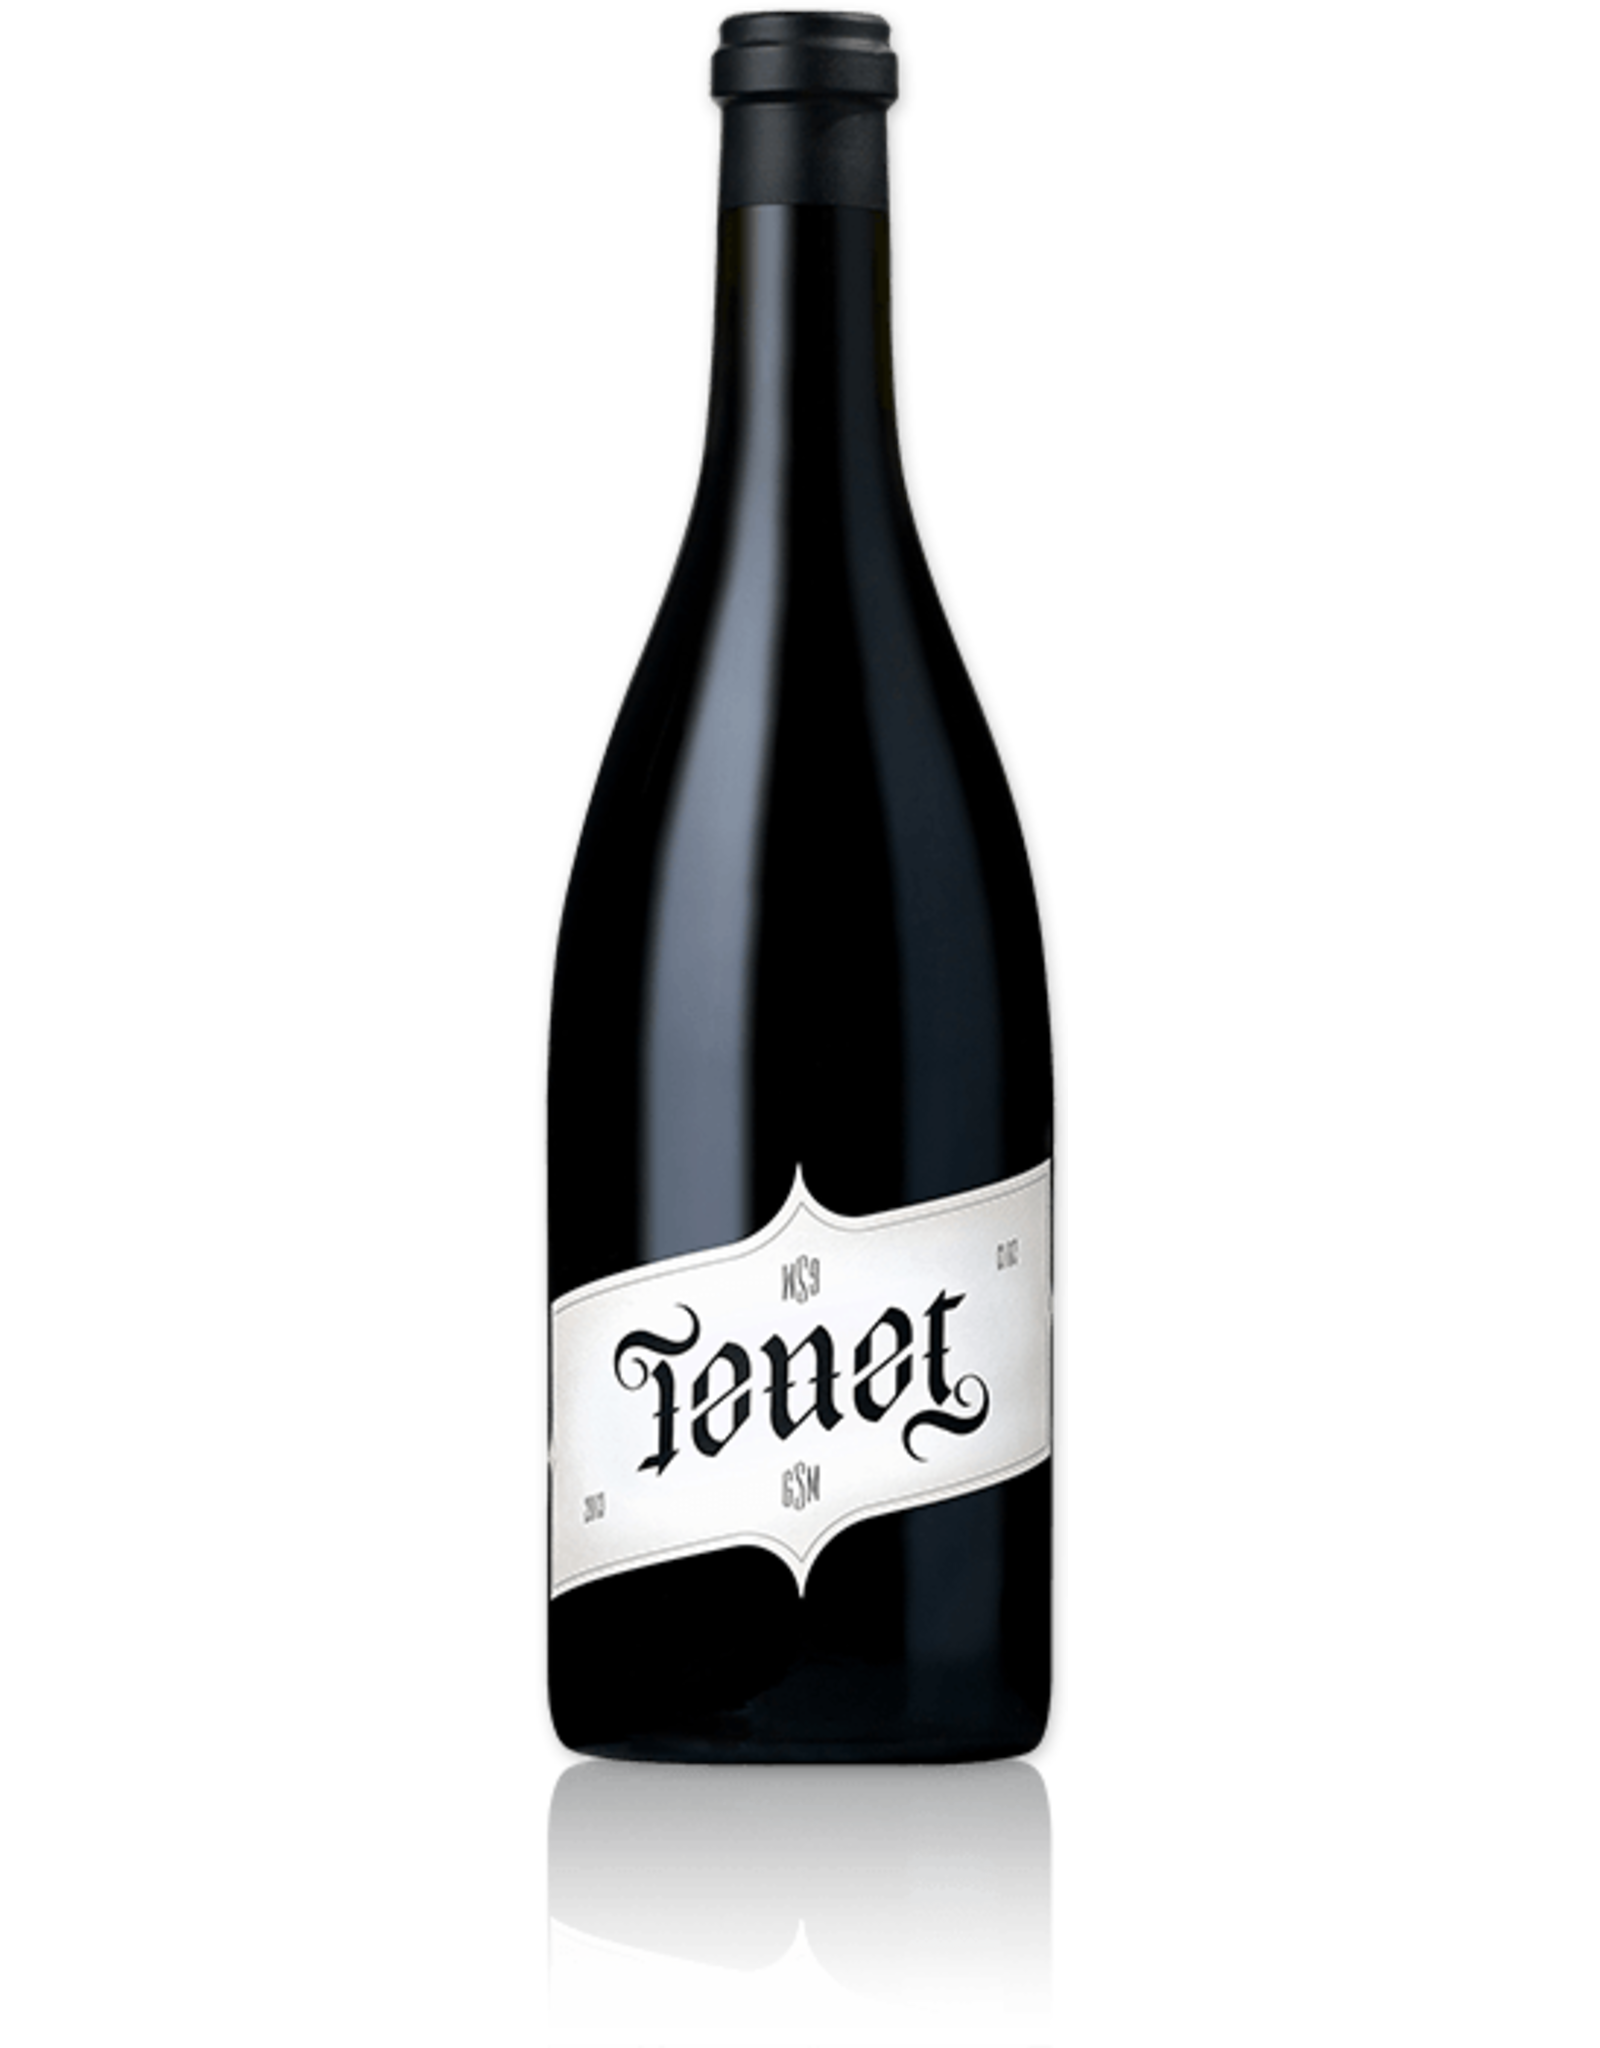 Tenet Red GSM 2013